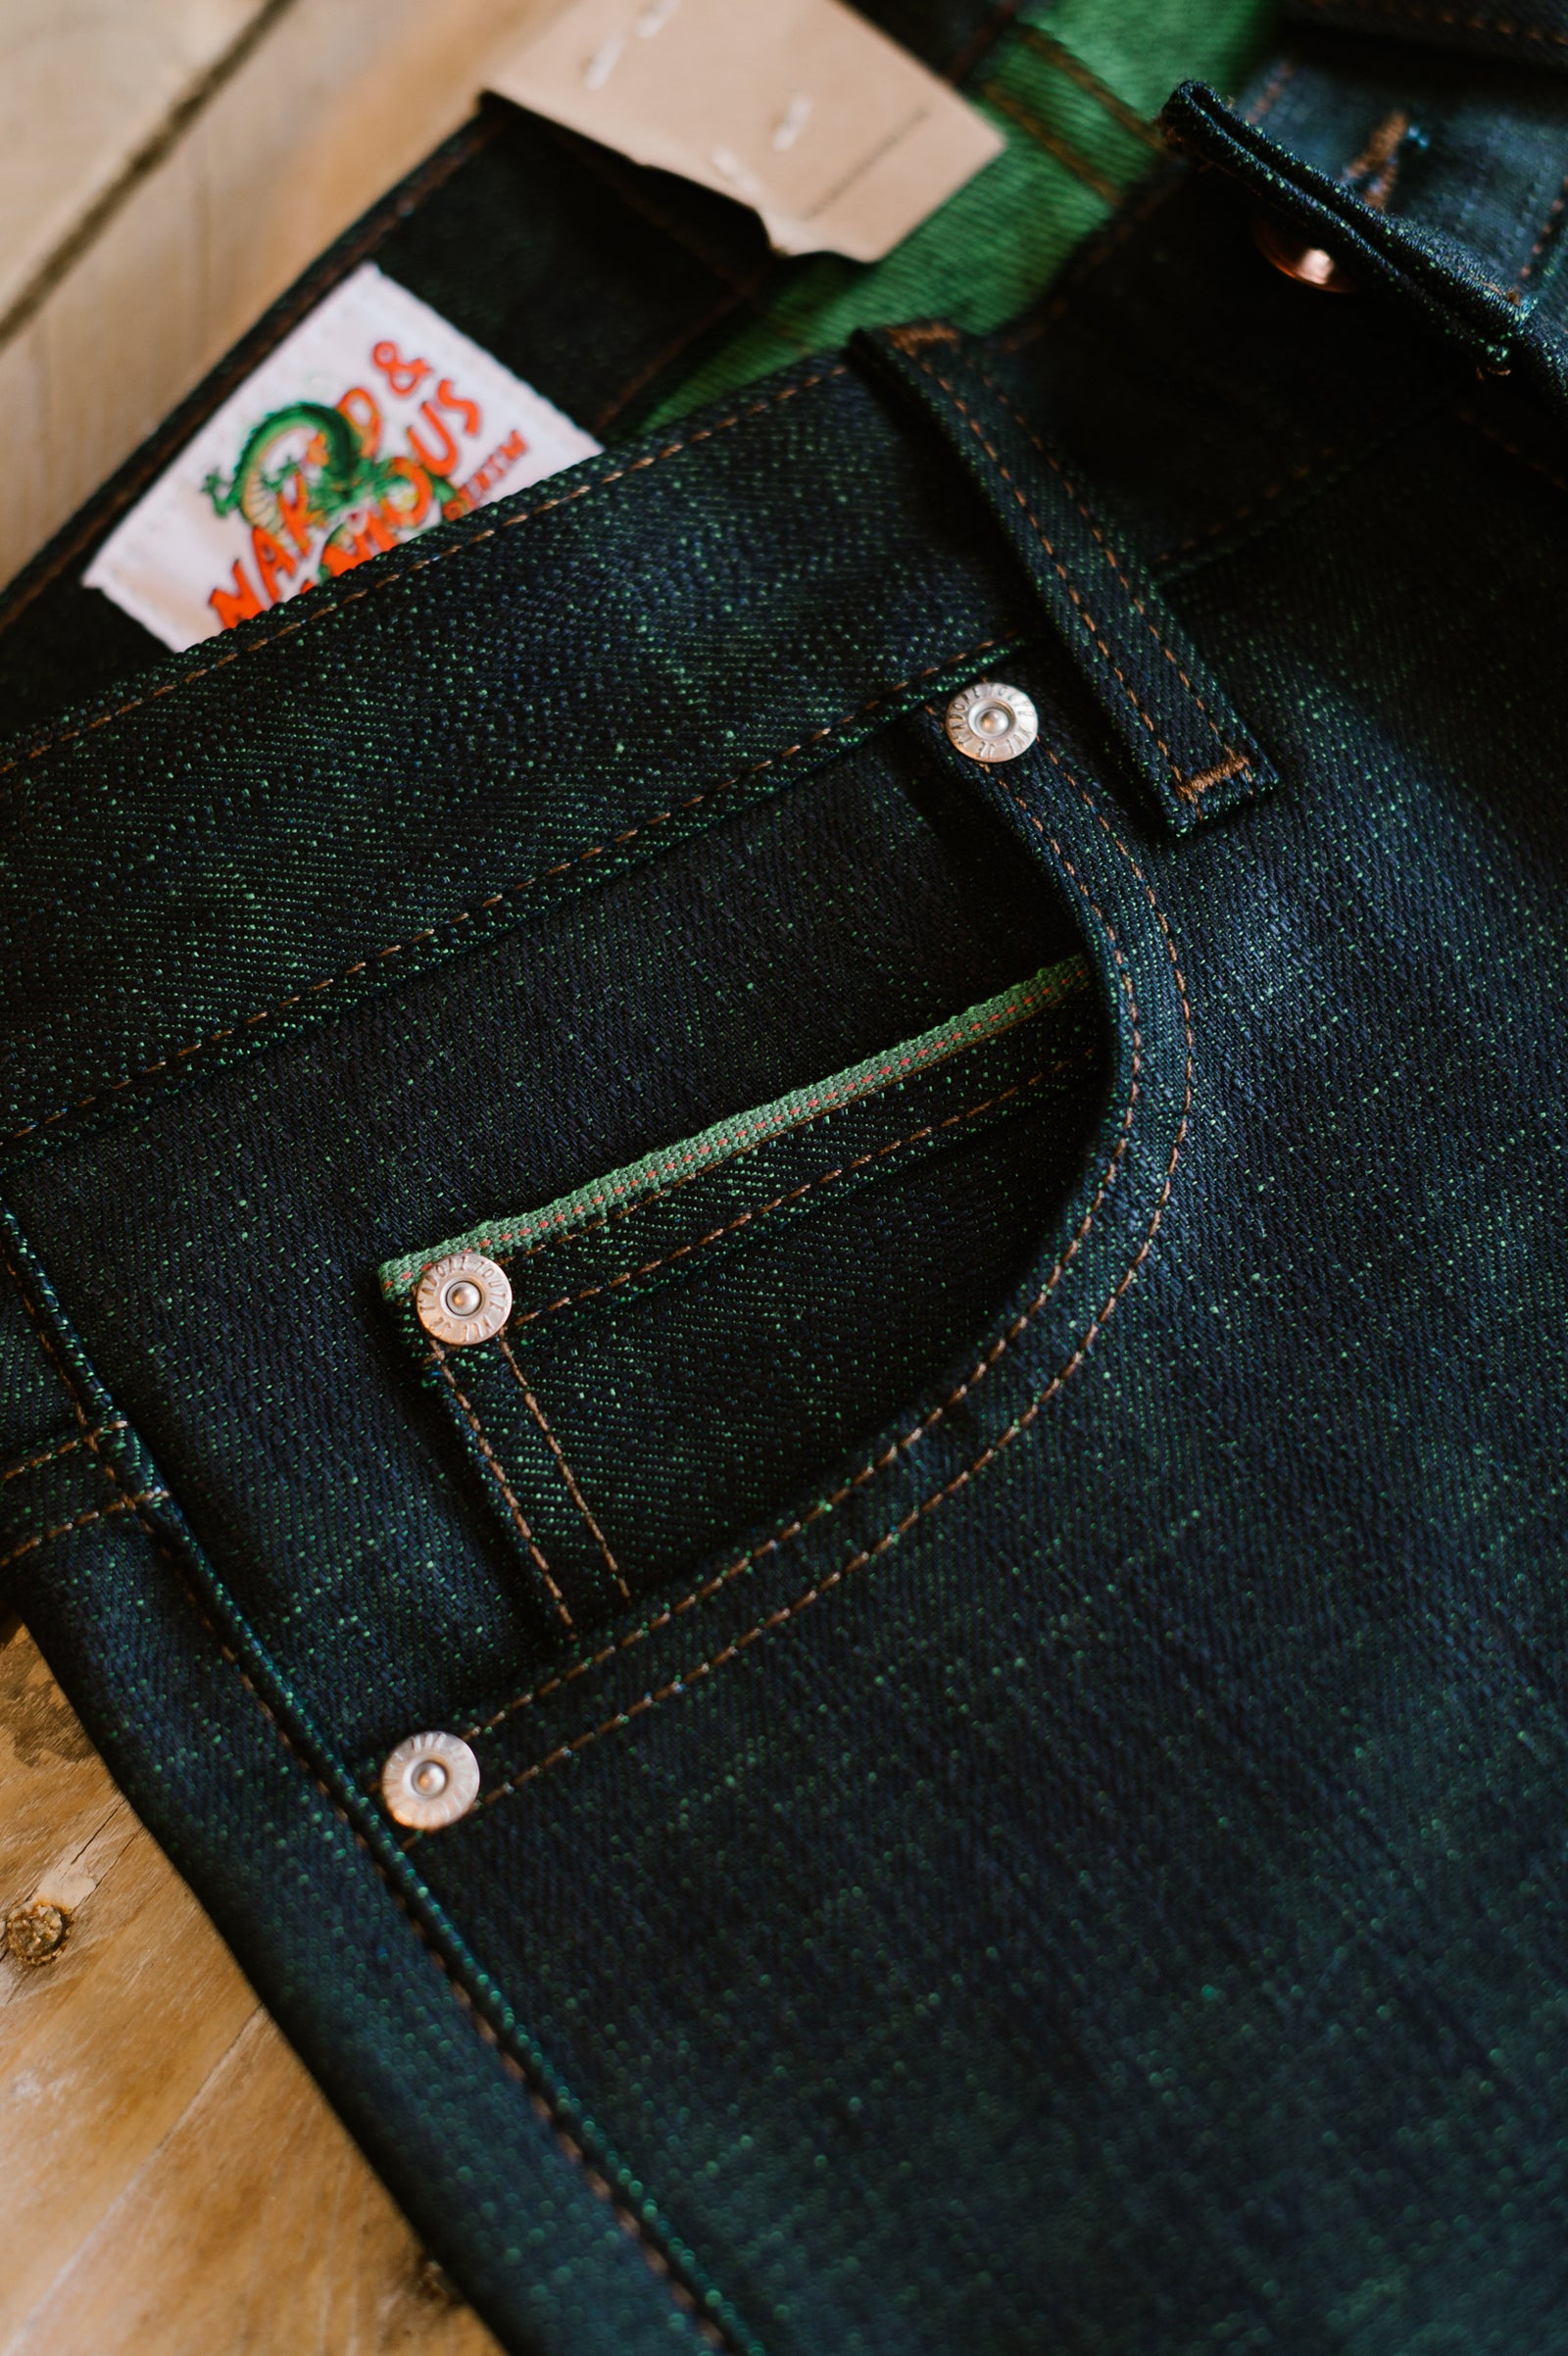 12.5oz - Cell Perfect Selvedge - Super Guy